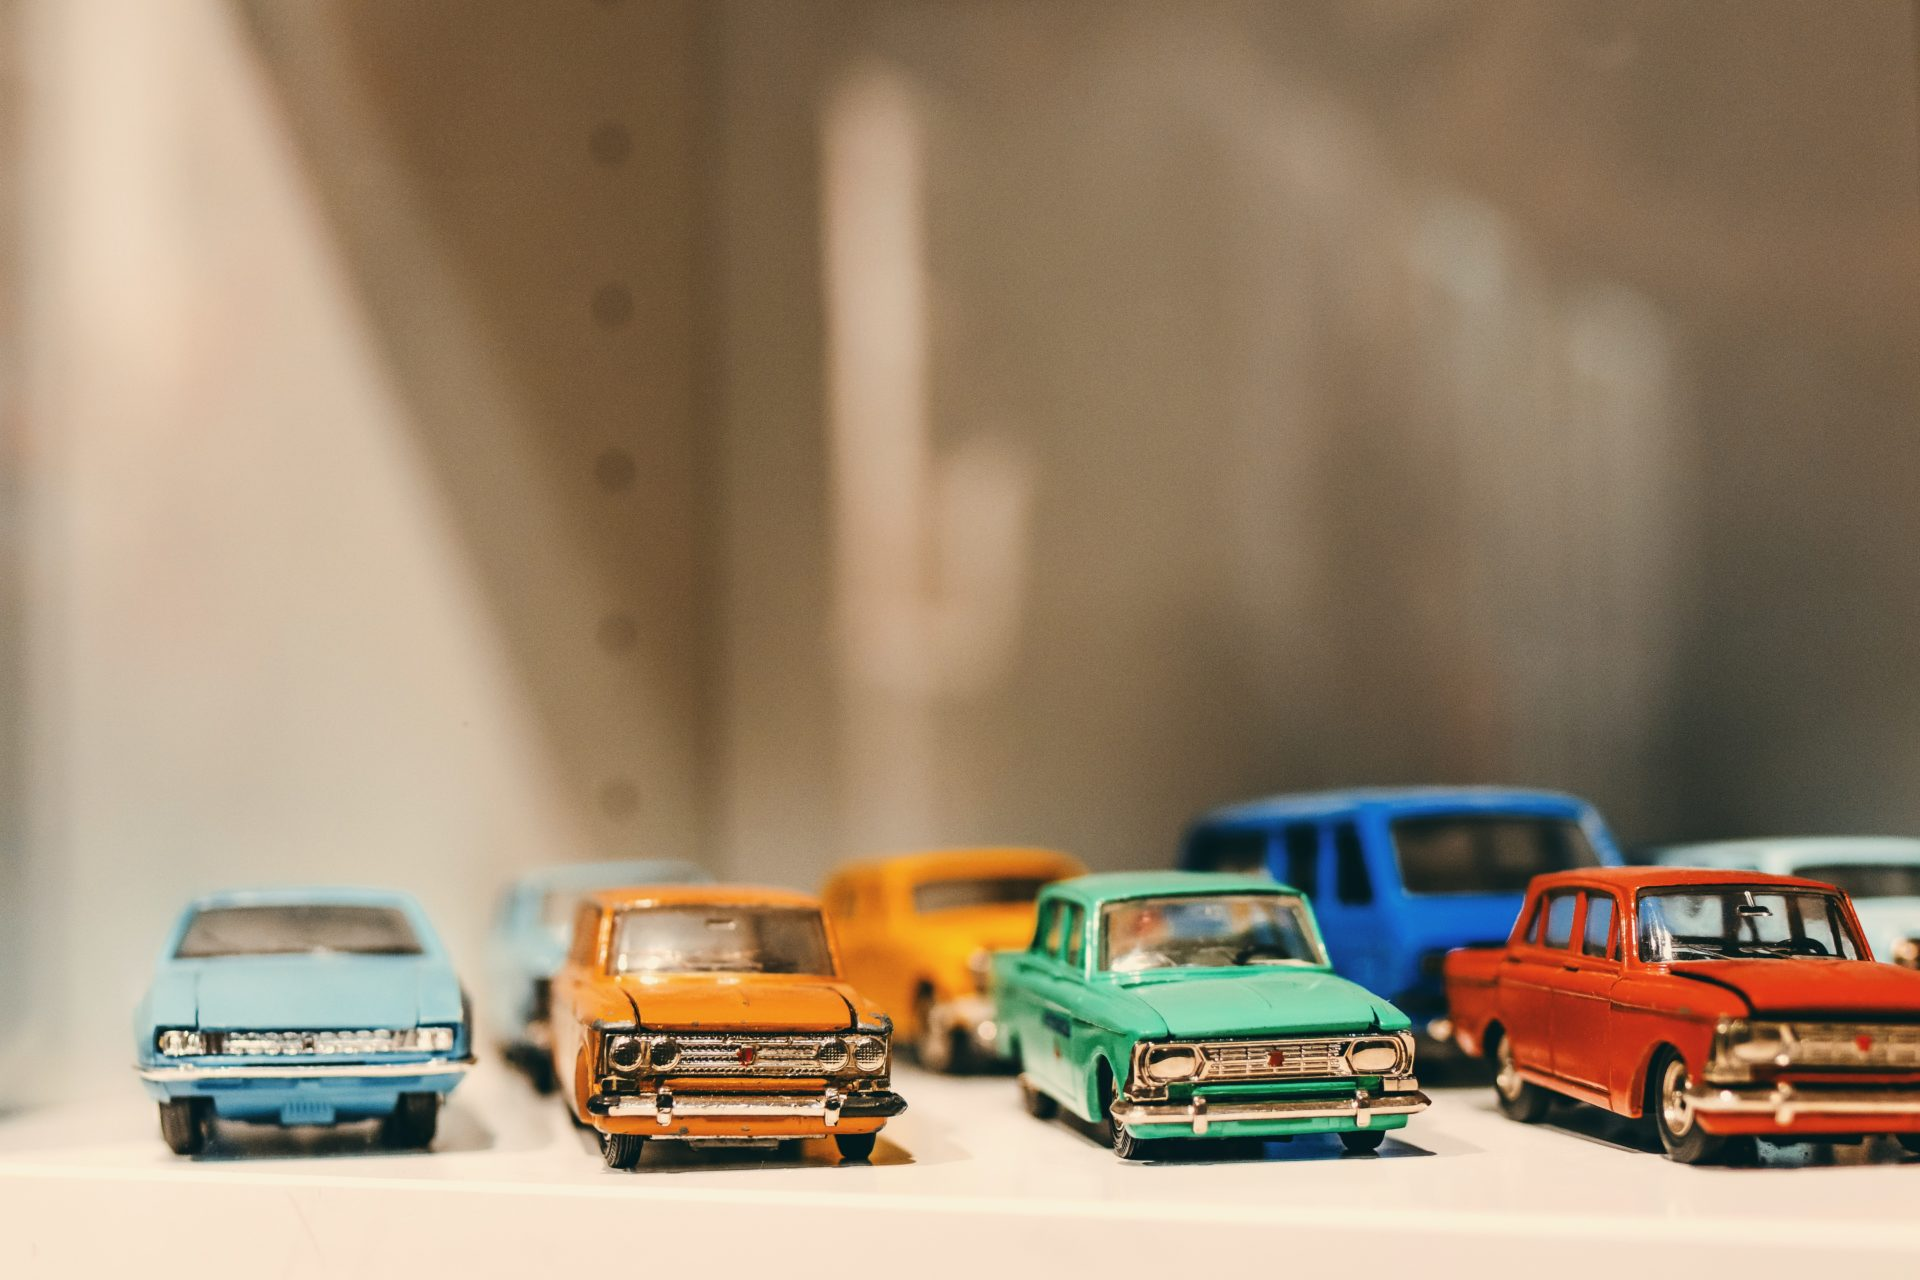 Selective Focus Photography Of Die Cast Model Toy Cars 2691481